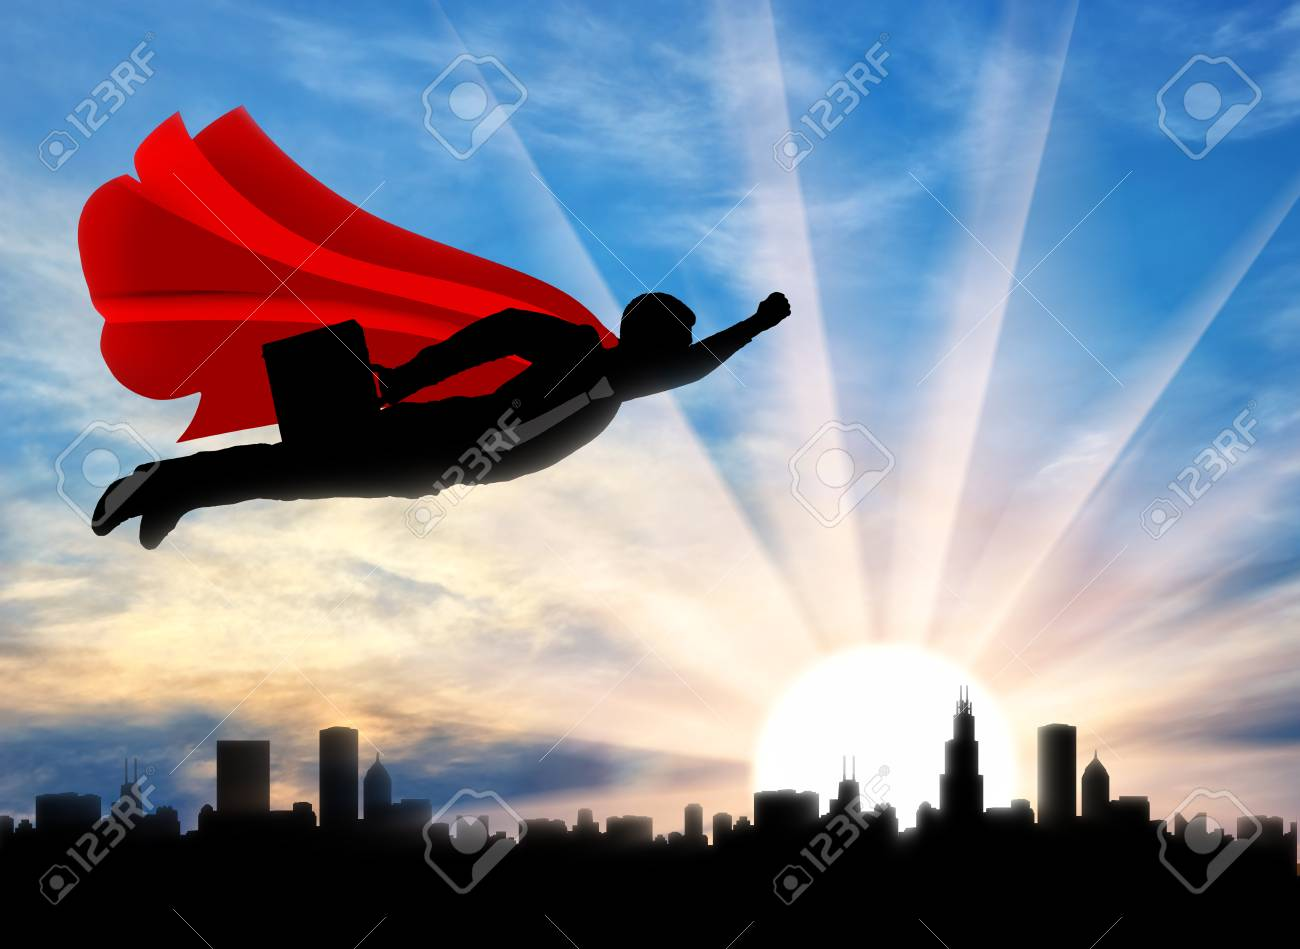 Superman businessman superhero silhouette of a superman businessman superman businessman superhero silhouette of a superman businessman with a briefcase flying in the sky publicscrutiny Images